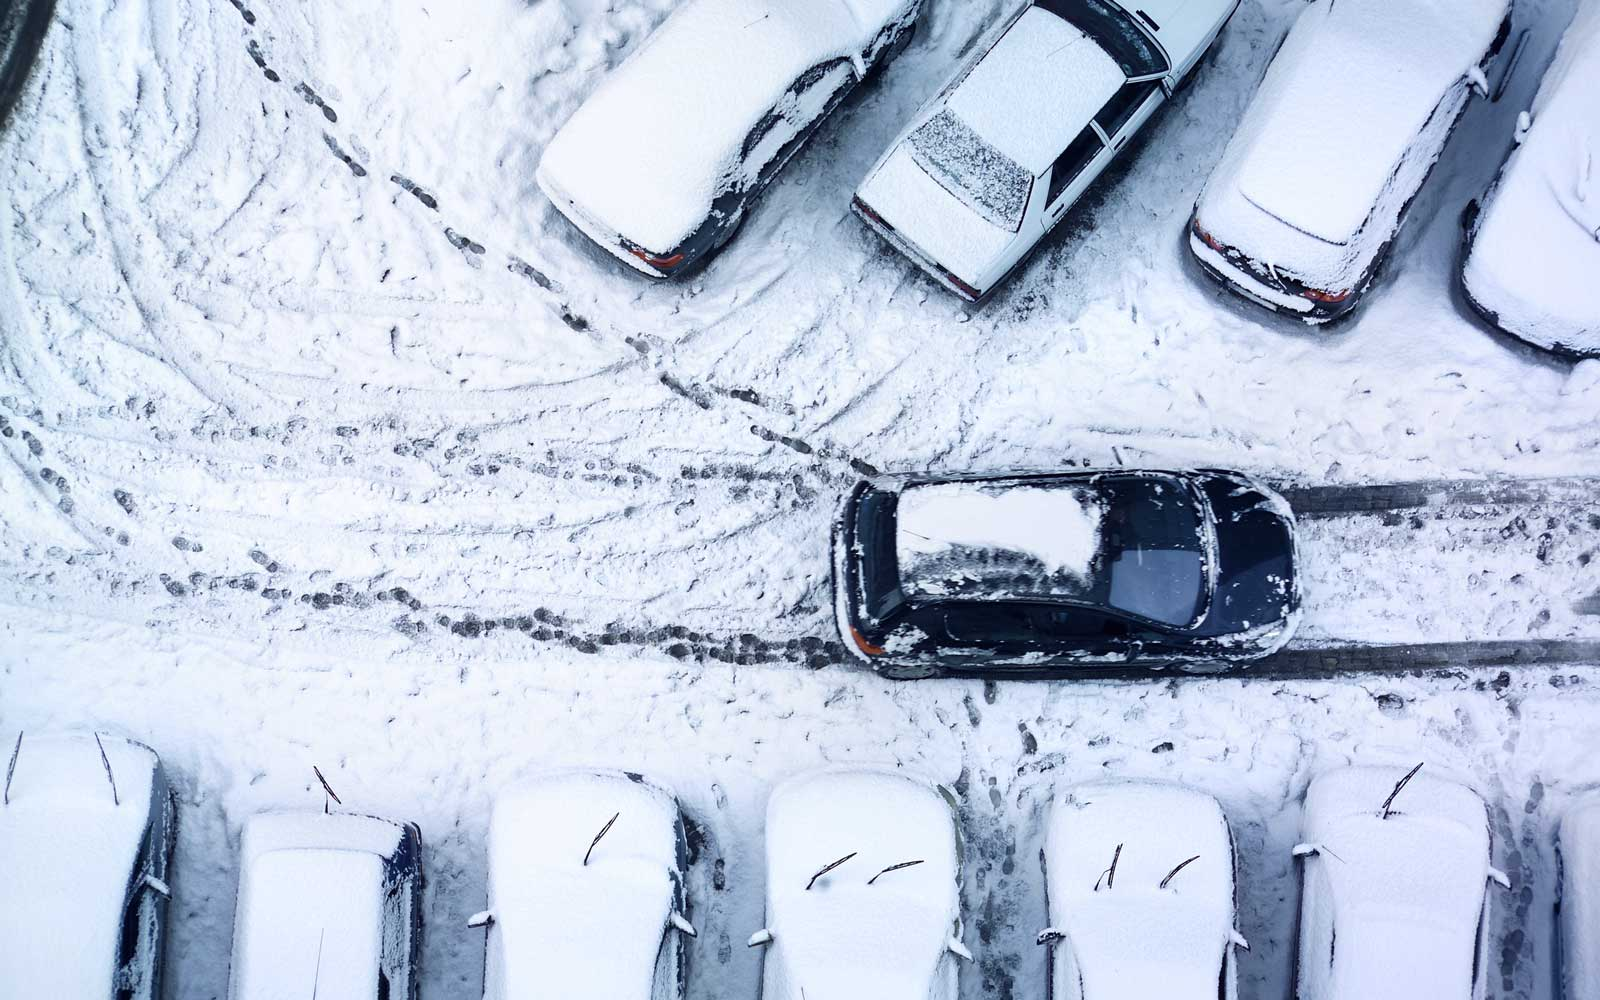 Snowy cars in a parking lot